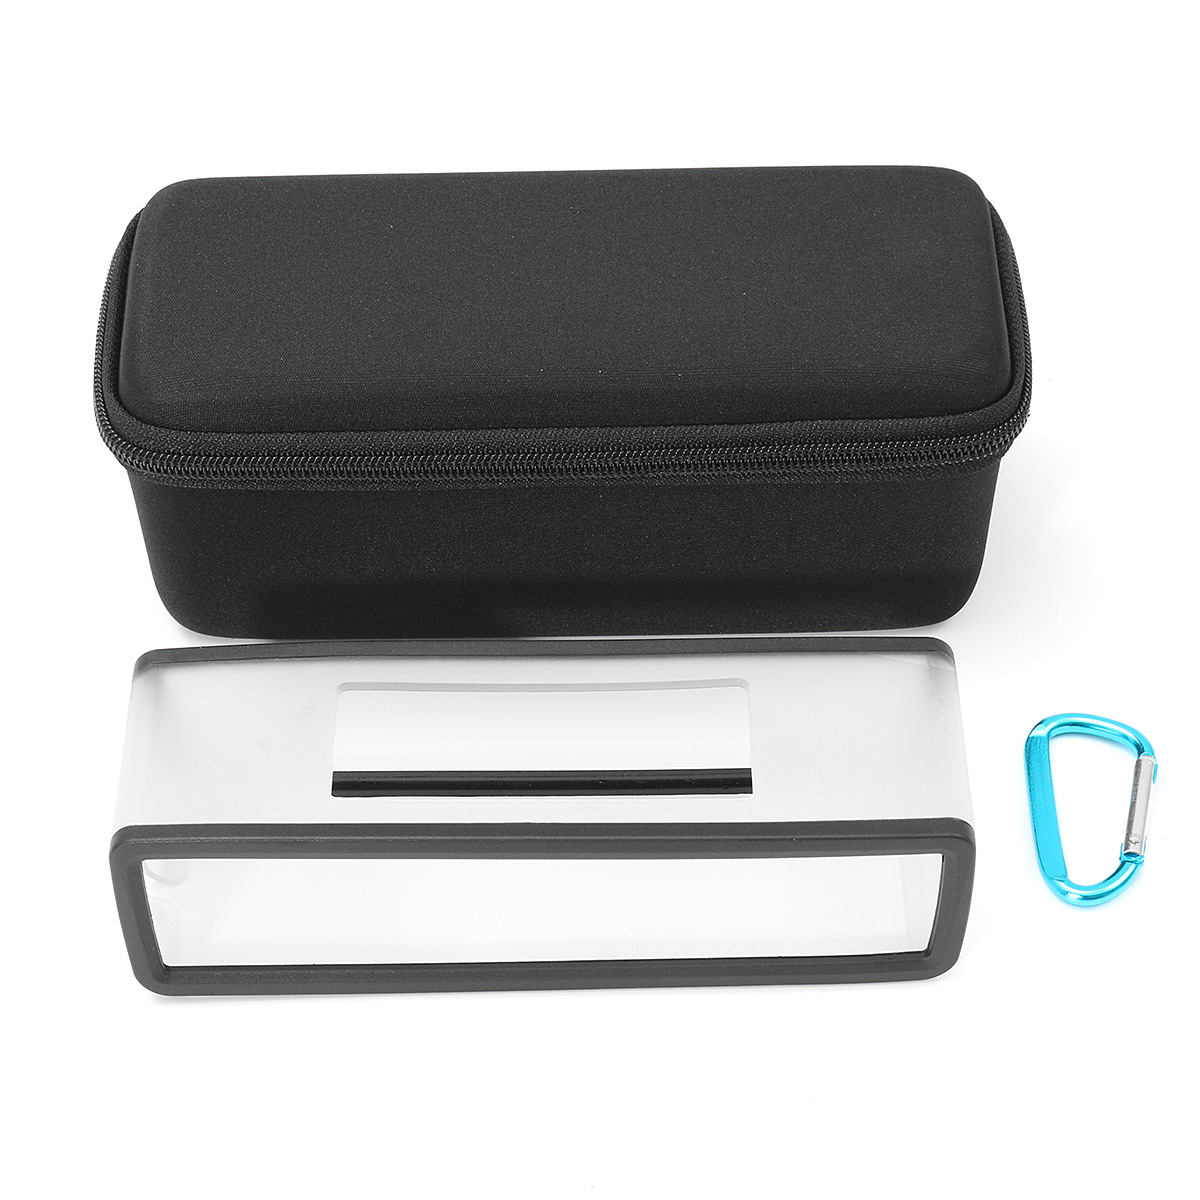 LEORY Carry Travel Case Case For Bose Soundlink Mini/Mini 2 Bluetooth Speaker EVA Storage Case Portable Protective Cover Box